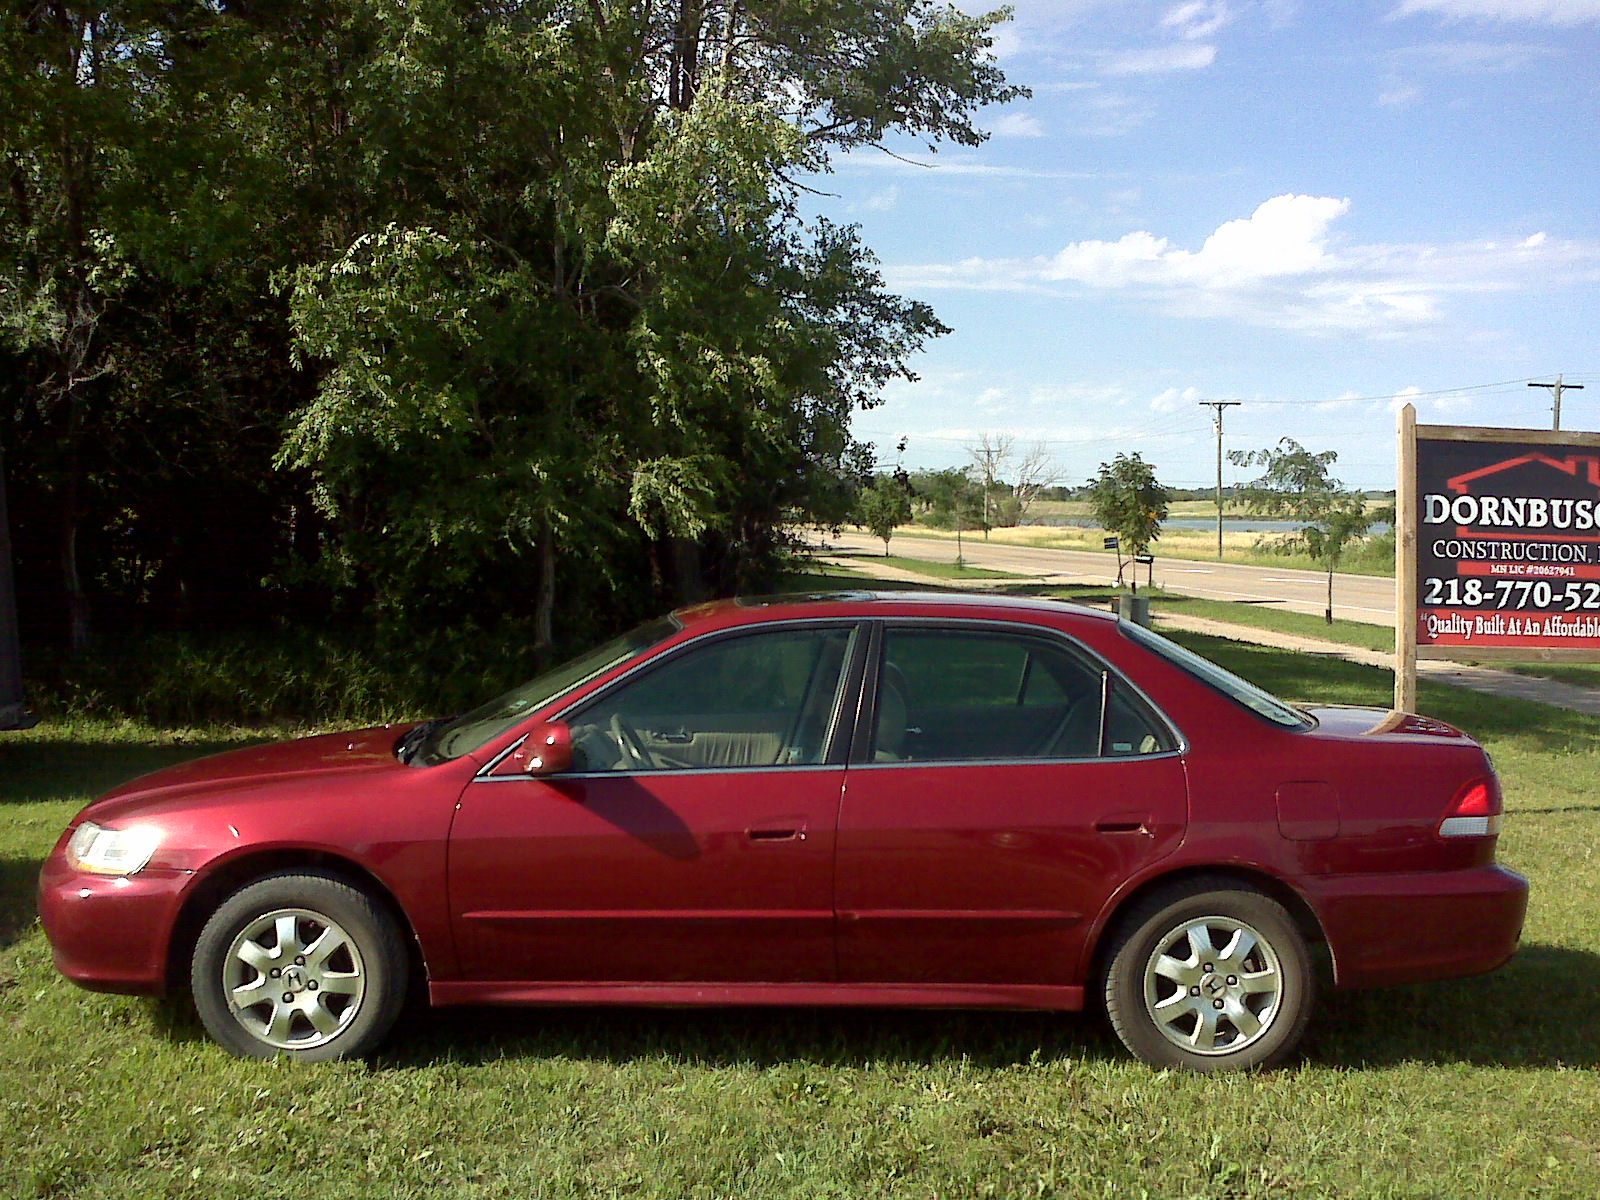 2001 Honda Accord EX with a 2.3-liter, 4-cylinder engine and a 4-speed automatic transmission